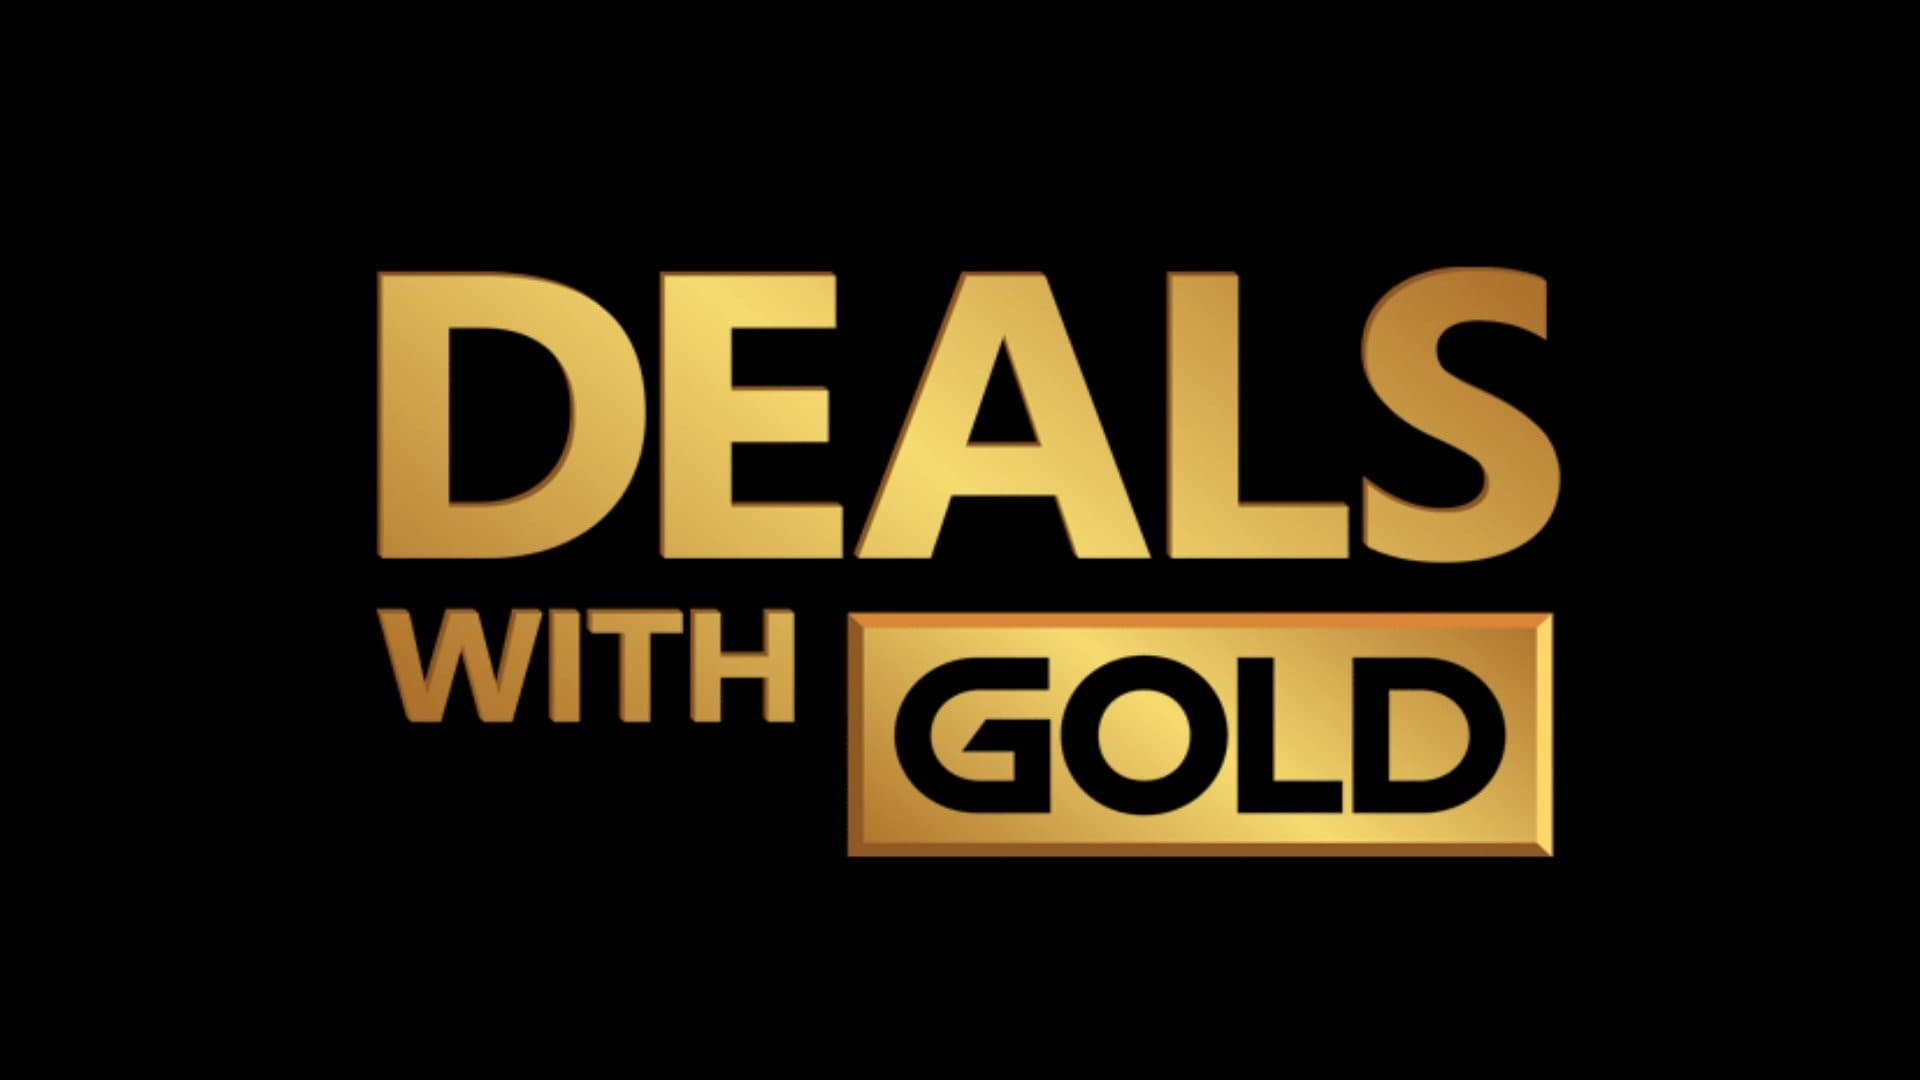 Deals with Gold semaine 51